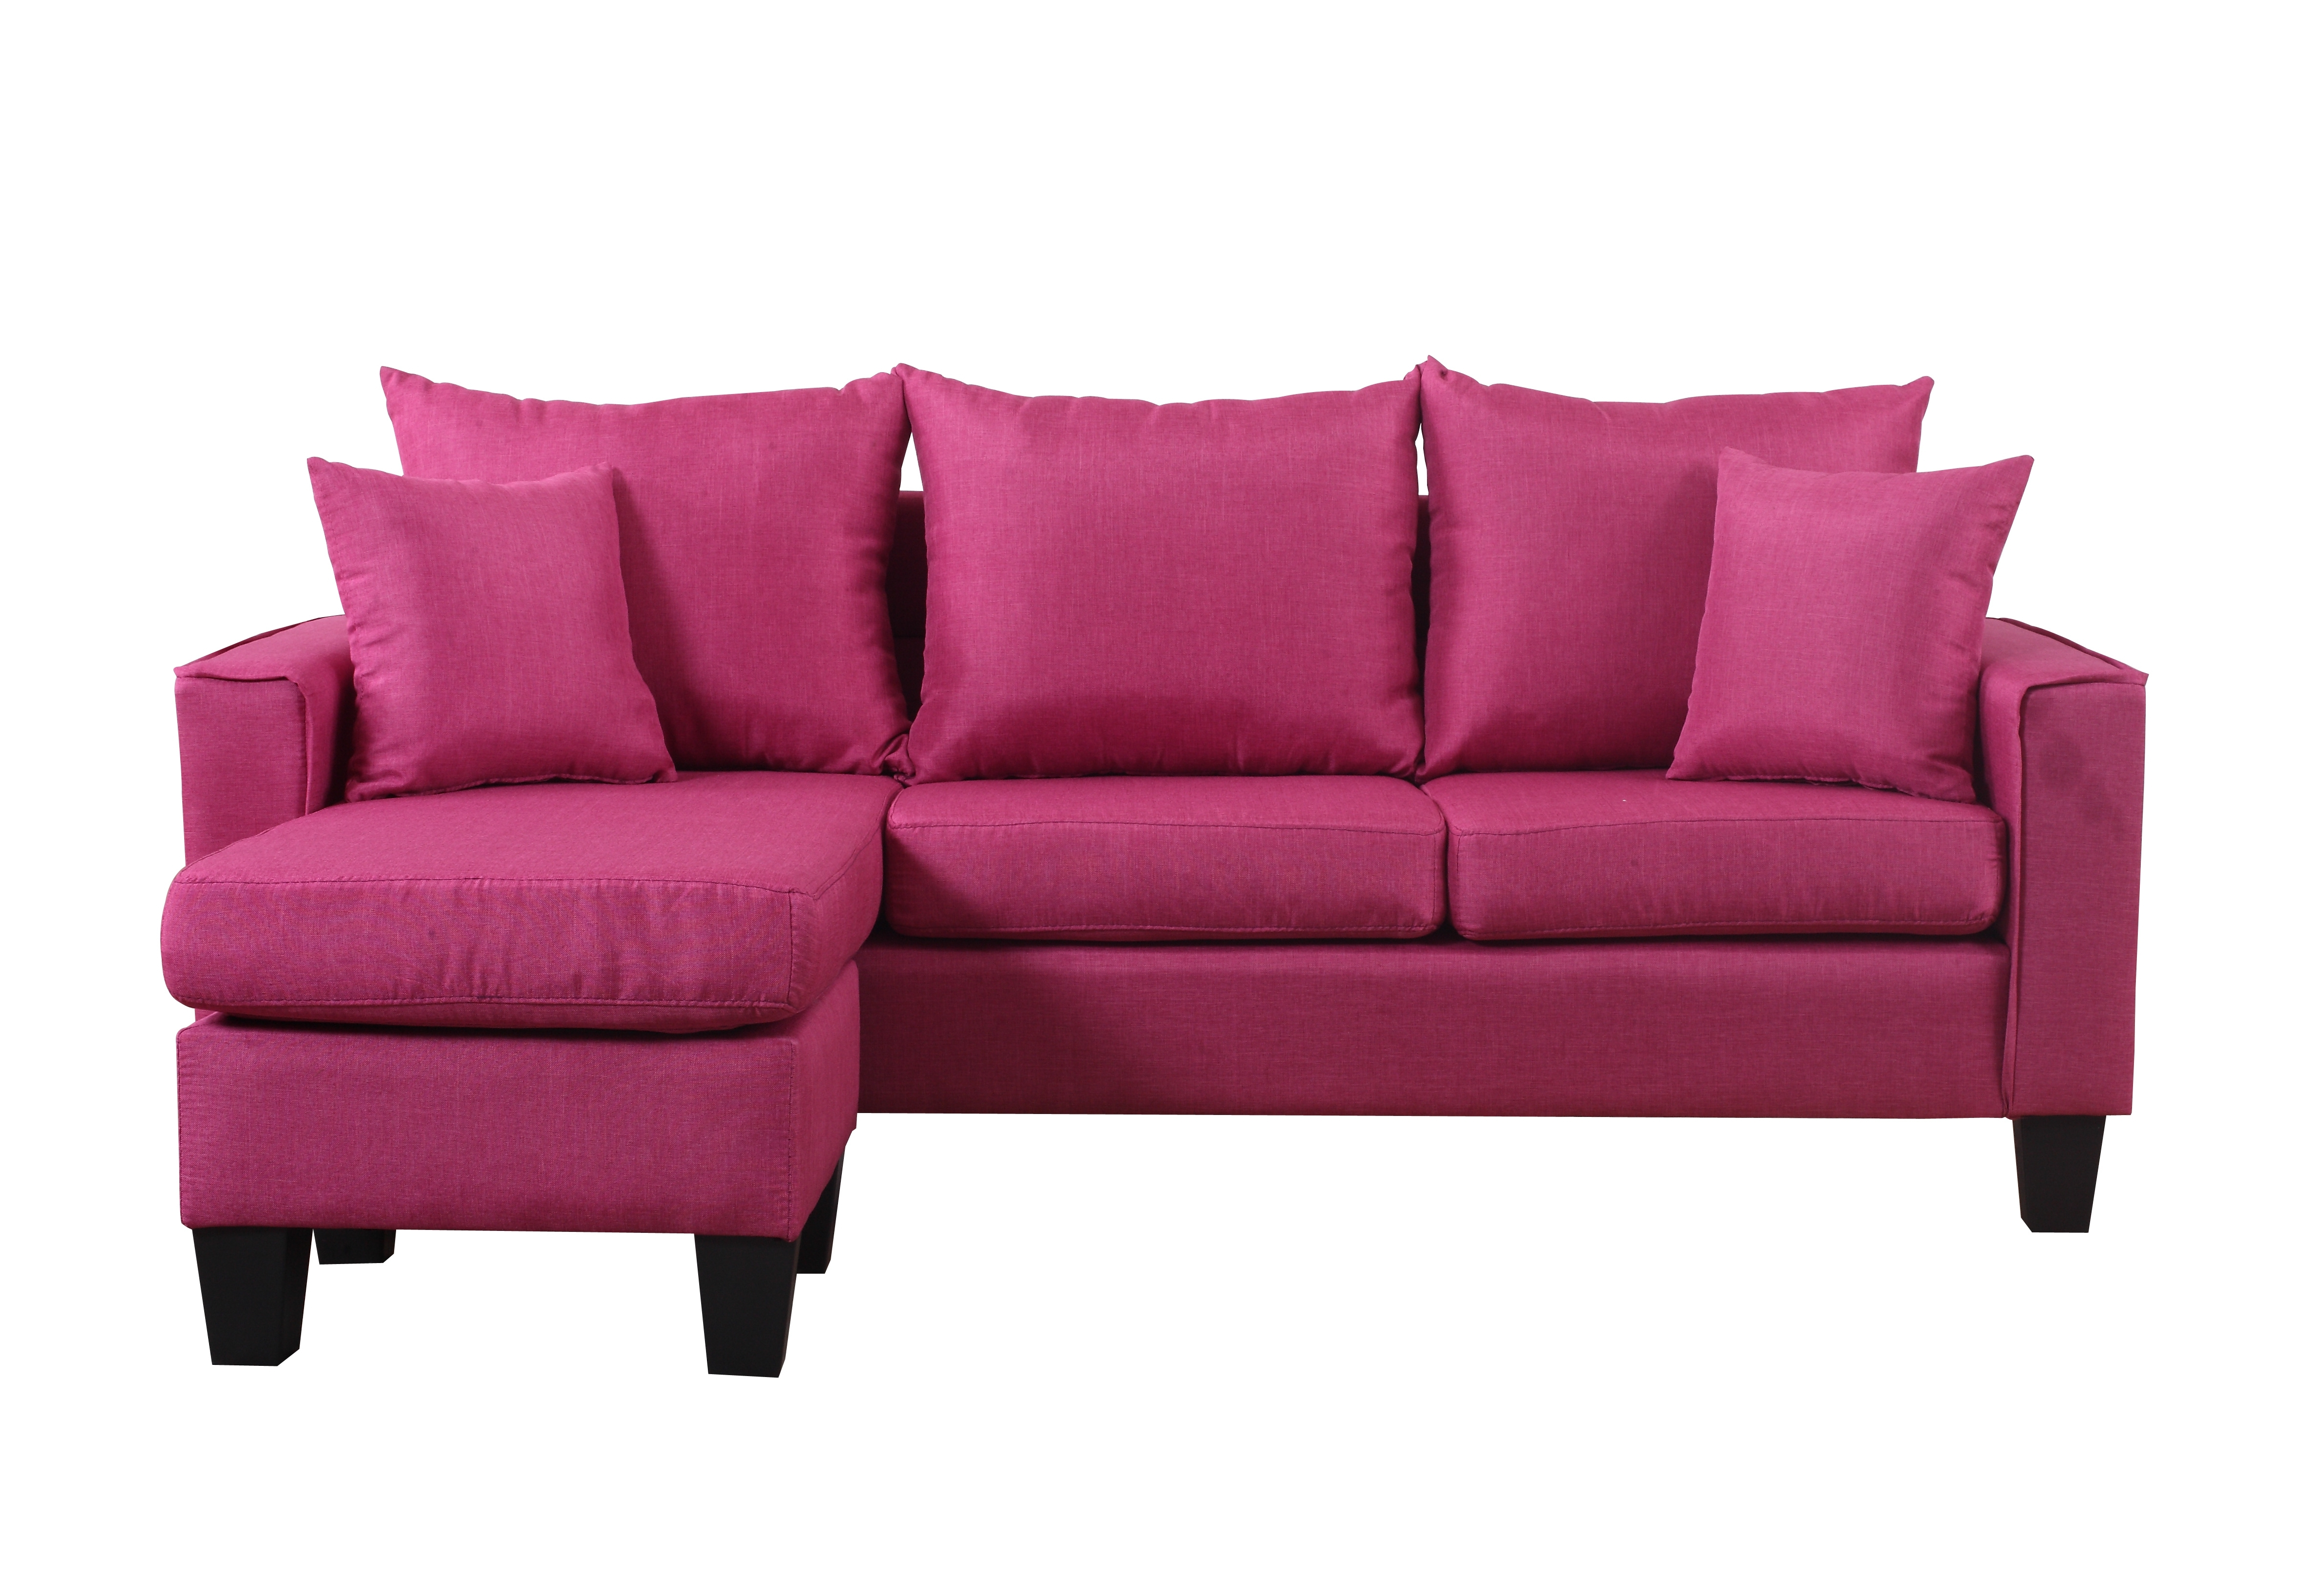 Green Sectional Sofas – Walmart Pertaining To Popular Green Sectional Sofas (Gallery 20 of 20)